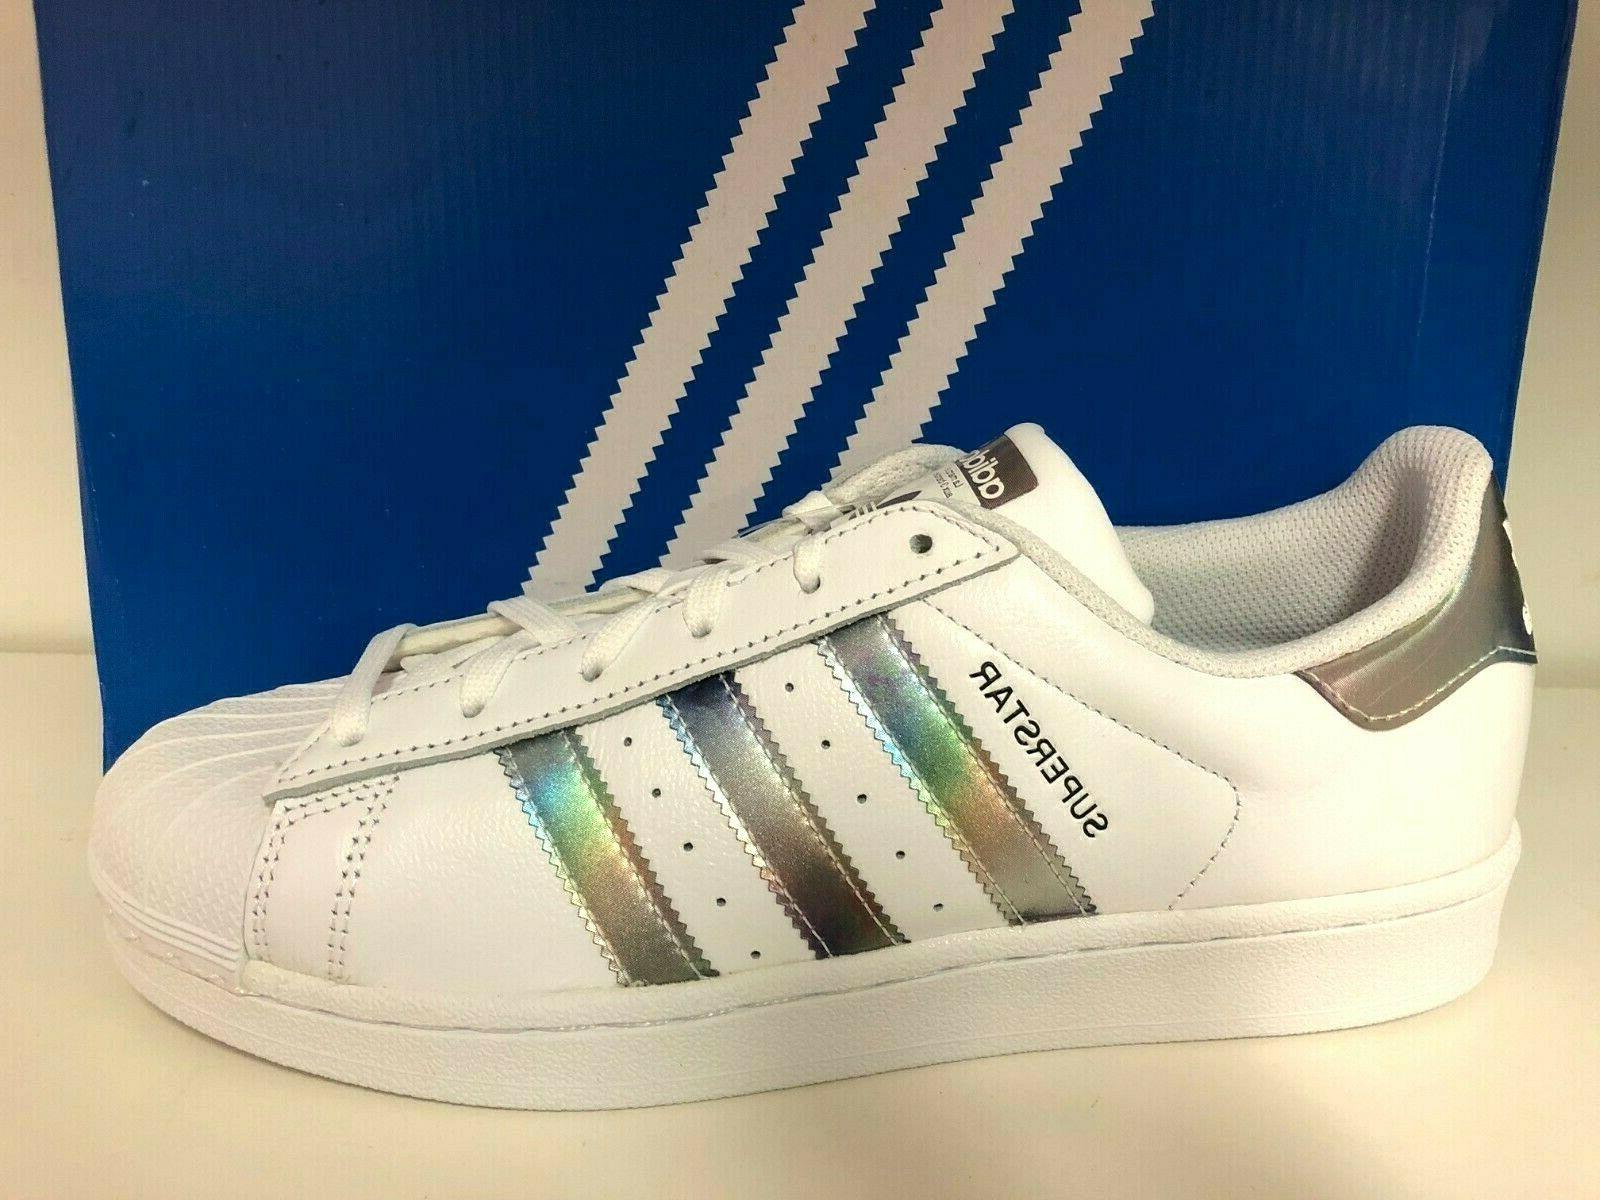 originals superstar j shell toe white metallic